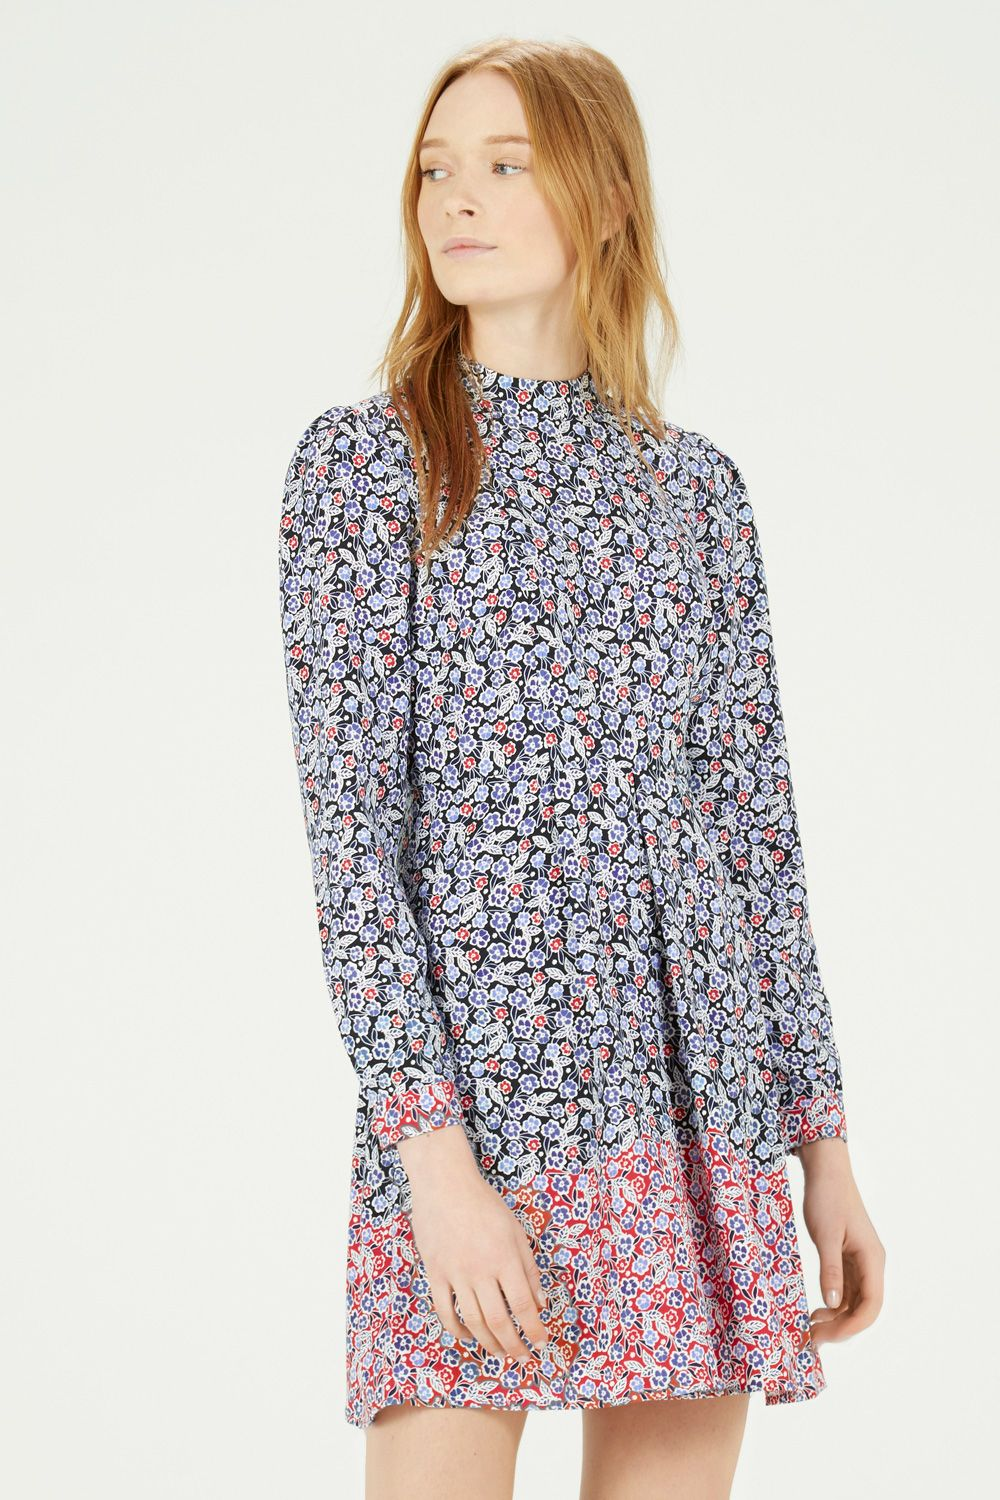 cdd3da67a26a This floral dress is constructed from a casual woven fabric and features a  high neck, puff shoulder detailing and a nipped in waist.